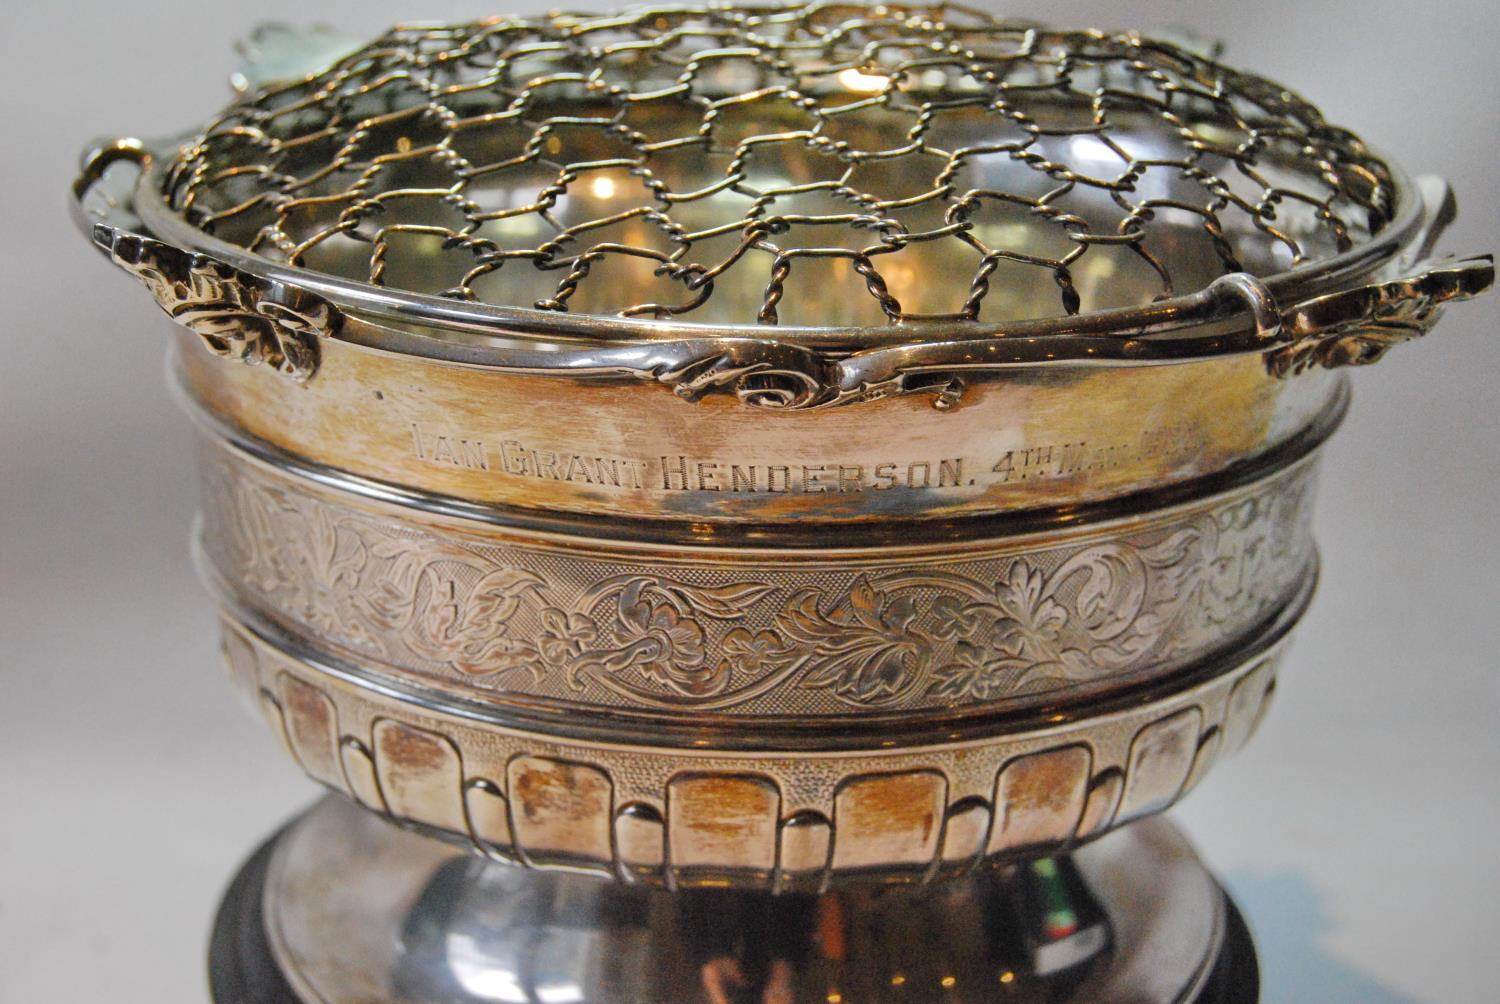 Silver rose bowl, semi gadrooned and engraved, with shaped cast border, by Crichton, Edinburgh 1890, - Image 2 of 3